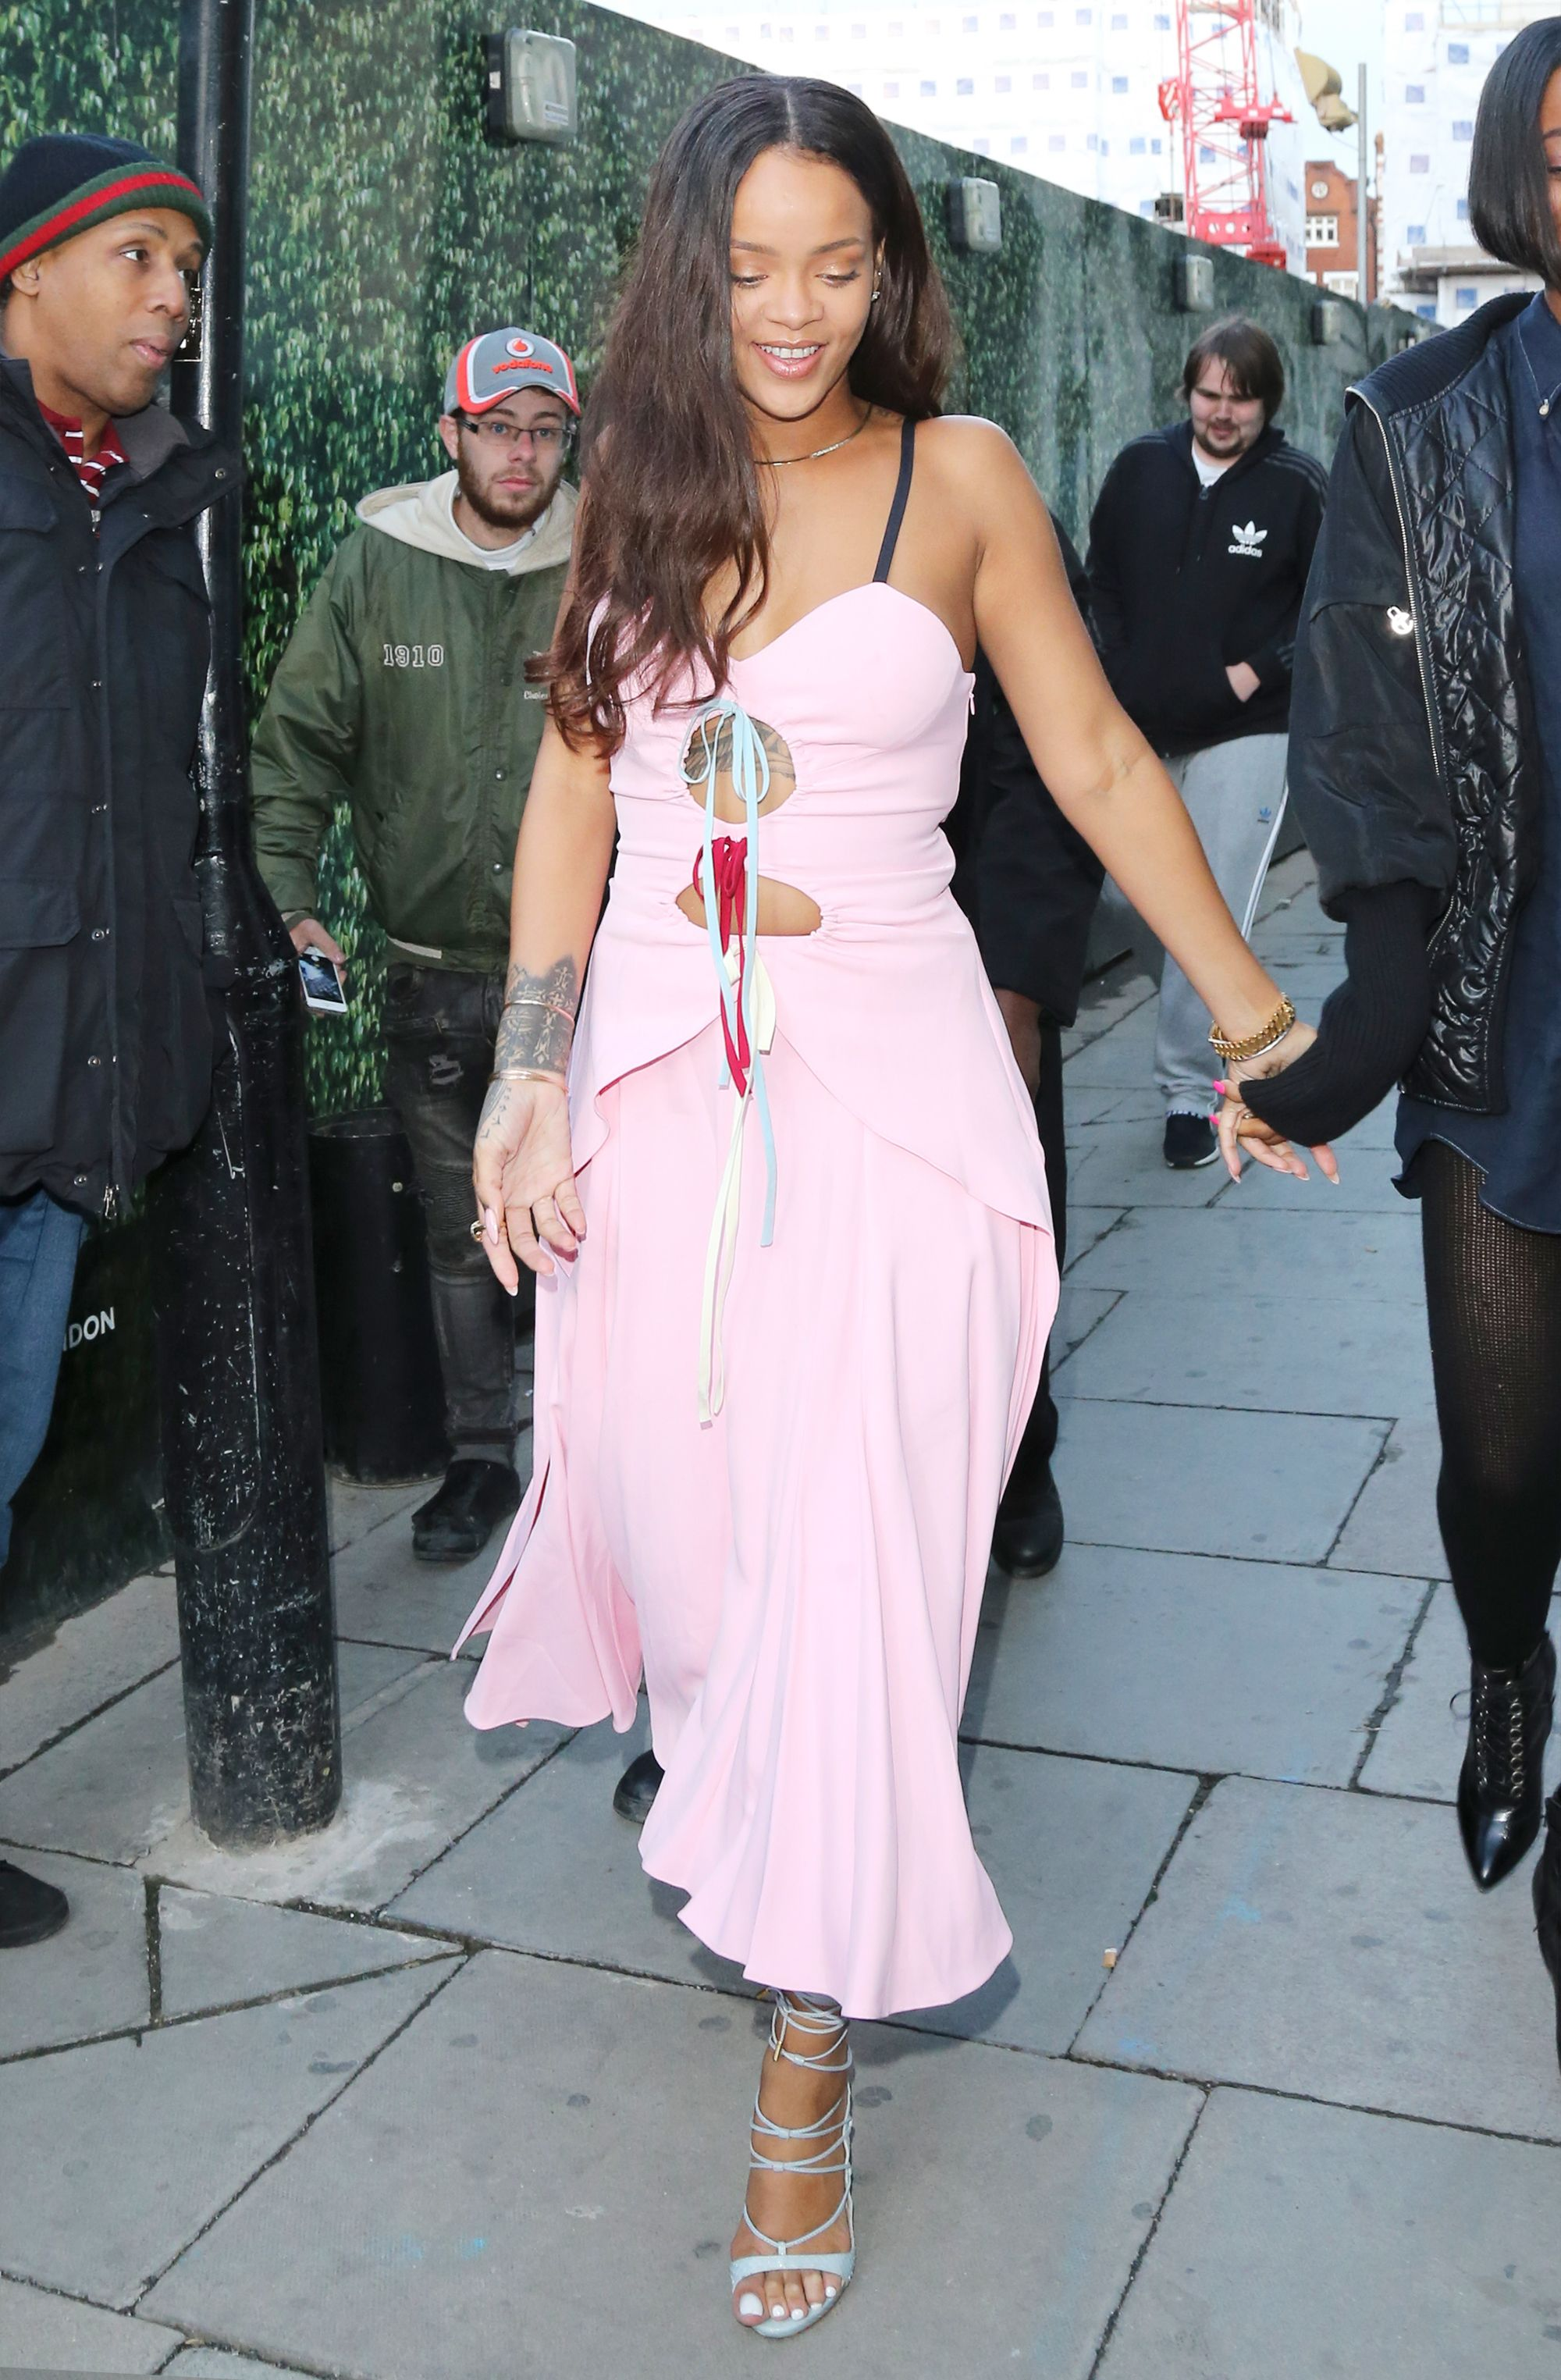 Rihanna Parties \'Til the Early A.M. in a Pretty Pastel Pink Dress ...